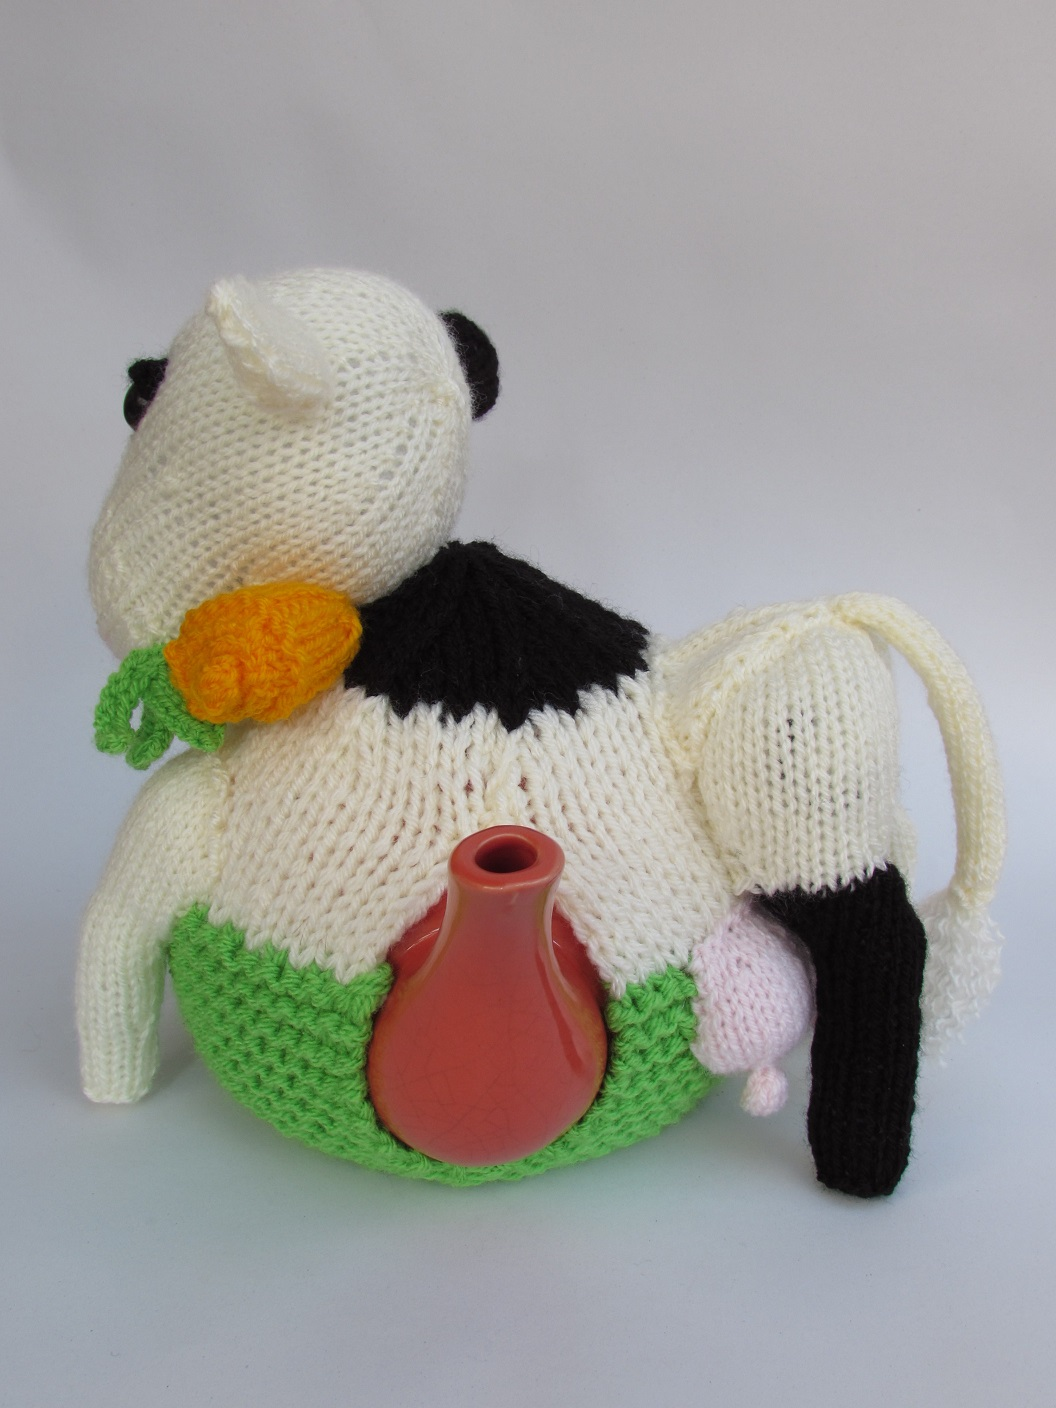 Knitting Pattern For Cow Tea Cosy : Friesian Cow tea cosy knitting pattern